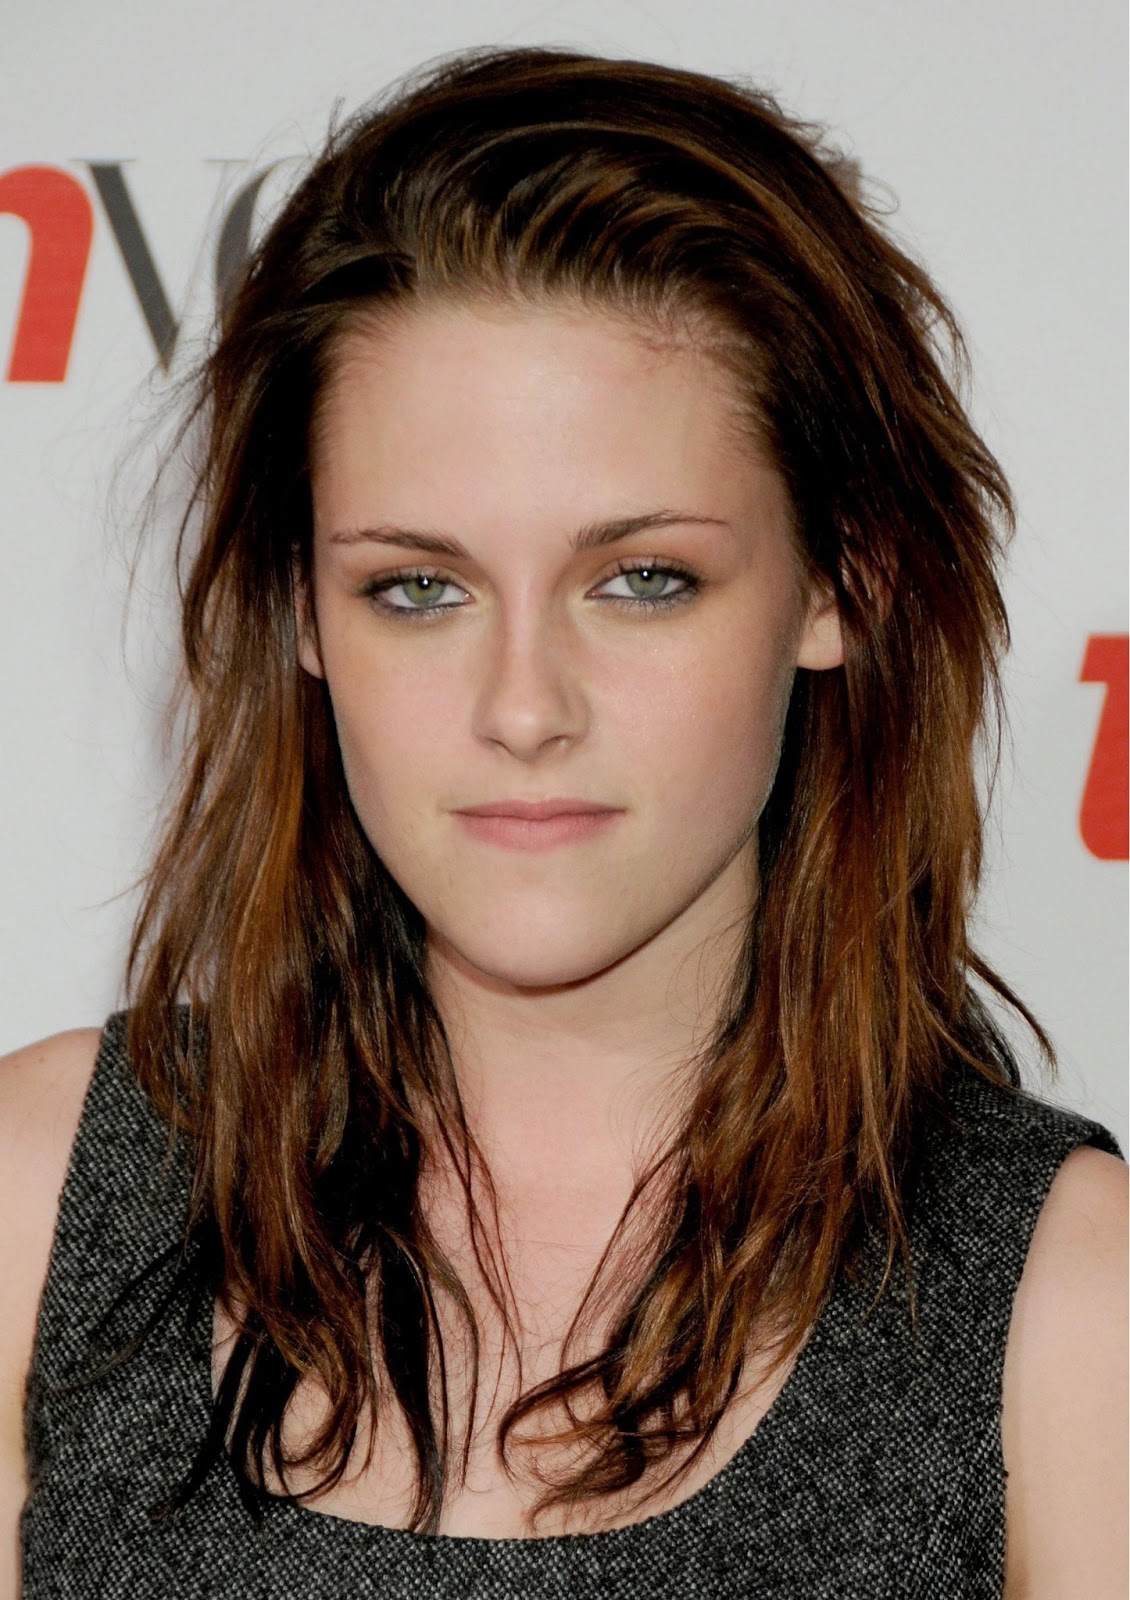 Hd Wallpapers Fine Kristen Stewart Hot,Kristen Stewart -6804